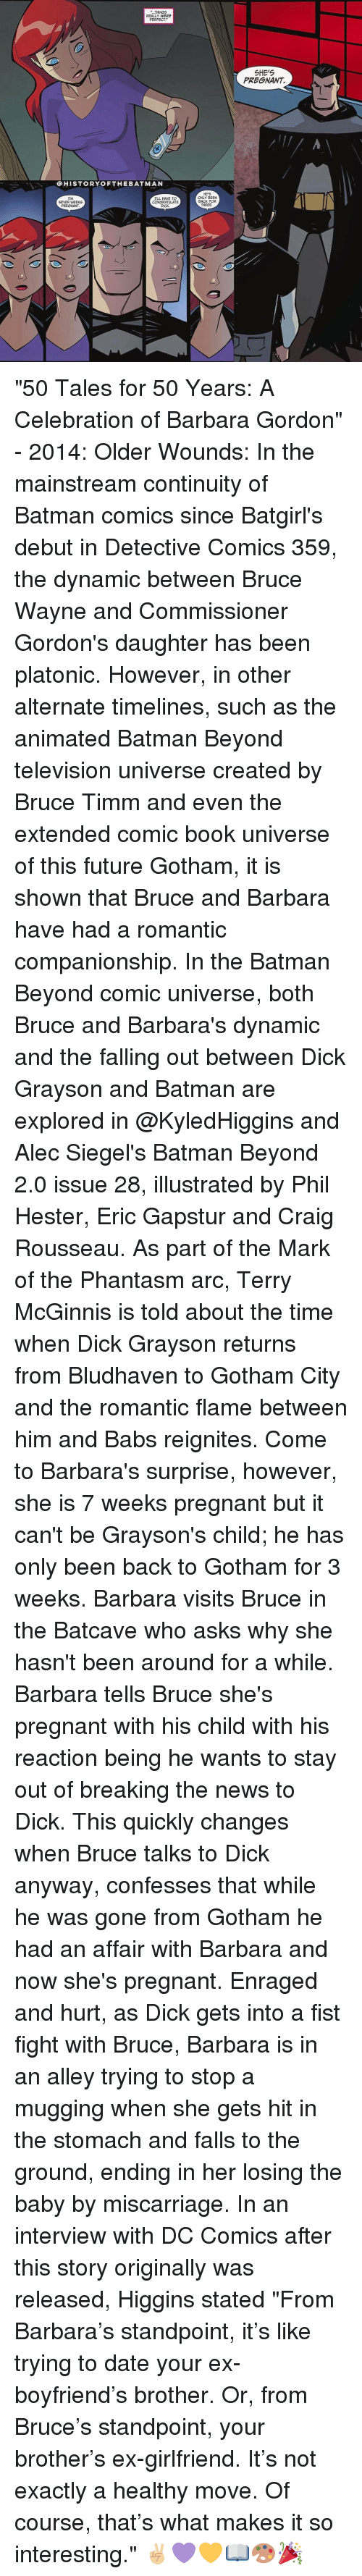 """Memes, Craig, and Gotham: THINGS  REALLY WERE  PERFECT.""""  HISTORY OFT HEBATMAN  I'M  ILL HAVE TO  CONGRATULATE  SEVEN WEEKS  DICK.  PREGNANT  HE'S  ONLY BEEN  BACK FOR  THREE  SHE'S  PREGNANT """"50 Tales for 50 Years: A Celebration of Barbara Gordon"""" - 2014: Older Wounds: In the mainstream continuity of Batman comics since Batgirl's debut in Detective Comics 359, the dynamic between Bruce Wayne and Commissioner Gordon's daughter has been platonic. However, in other alternate timelines, such as the animated Batman Beyond television universe created by Bruce Timm and even the extended comic book universe of this future Gotham, it is shown that Bruce and Barbara have had a romantic companionship. In the Batman Beyond comic universe, both Bruce and Barbara's dynamic and the falling out between Dick Grayson and Batman are explored in @KyledHiggins and Alec Siegel's Batman Beyond 2.0 issue 28, illustrated by Phil Hester, Eric Gapstur and Craig Rousseau. As part of the Mark of the Phantasm arc, Terry McGinnis is told about the time when Dick Grayson returns from Bludhaven to Gotham City and the romantic flame between him and Babs reignites. Come to Barbara's surprise, however, she is 7 weeks pregnant but it can't be Grayson's child; he has only been back to Gotham for 3 weeks. Barbara visits Bruce in the Batcave who asks why she hasn't been around for a while. Barbara tells Bruce she's pregnant with his child with his reaction being he wants to stay out of breaking the news to Dick. This quickly changes when Bruce talks to Dick anyway, confesses that while he was gone from Gotham he had an affair with Barbara and now she's pregnant. Enraged and hurt, as Dick gets into a fist fight with Bruce, Barbara is in an alley trying to stop a mugging when she gets hit in the stomach and falls to the ground, ending in her losing the baby by miscarriage. In an interview with DC Comics after this story originally was released, Higgins stated """"From Barbara's standpoint, it's like trying to"""